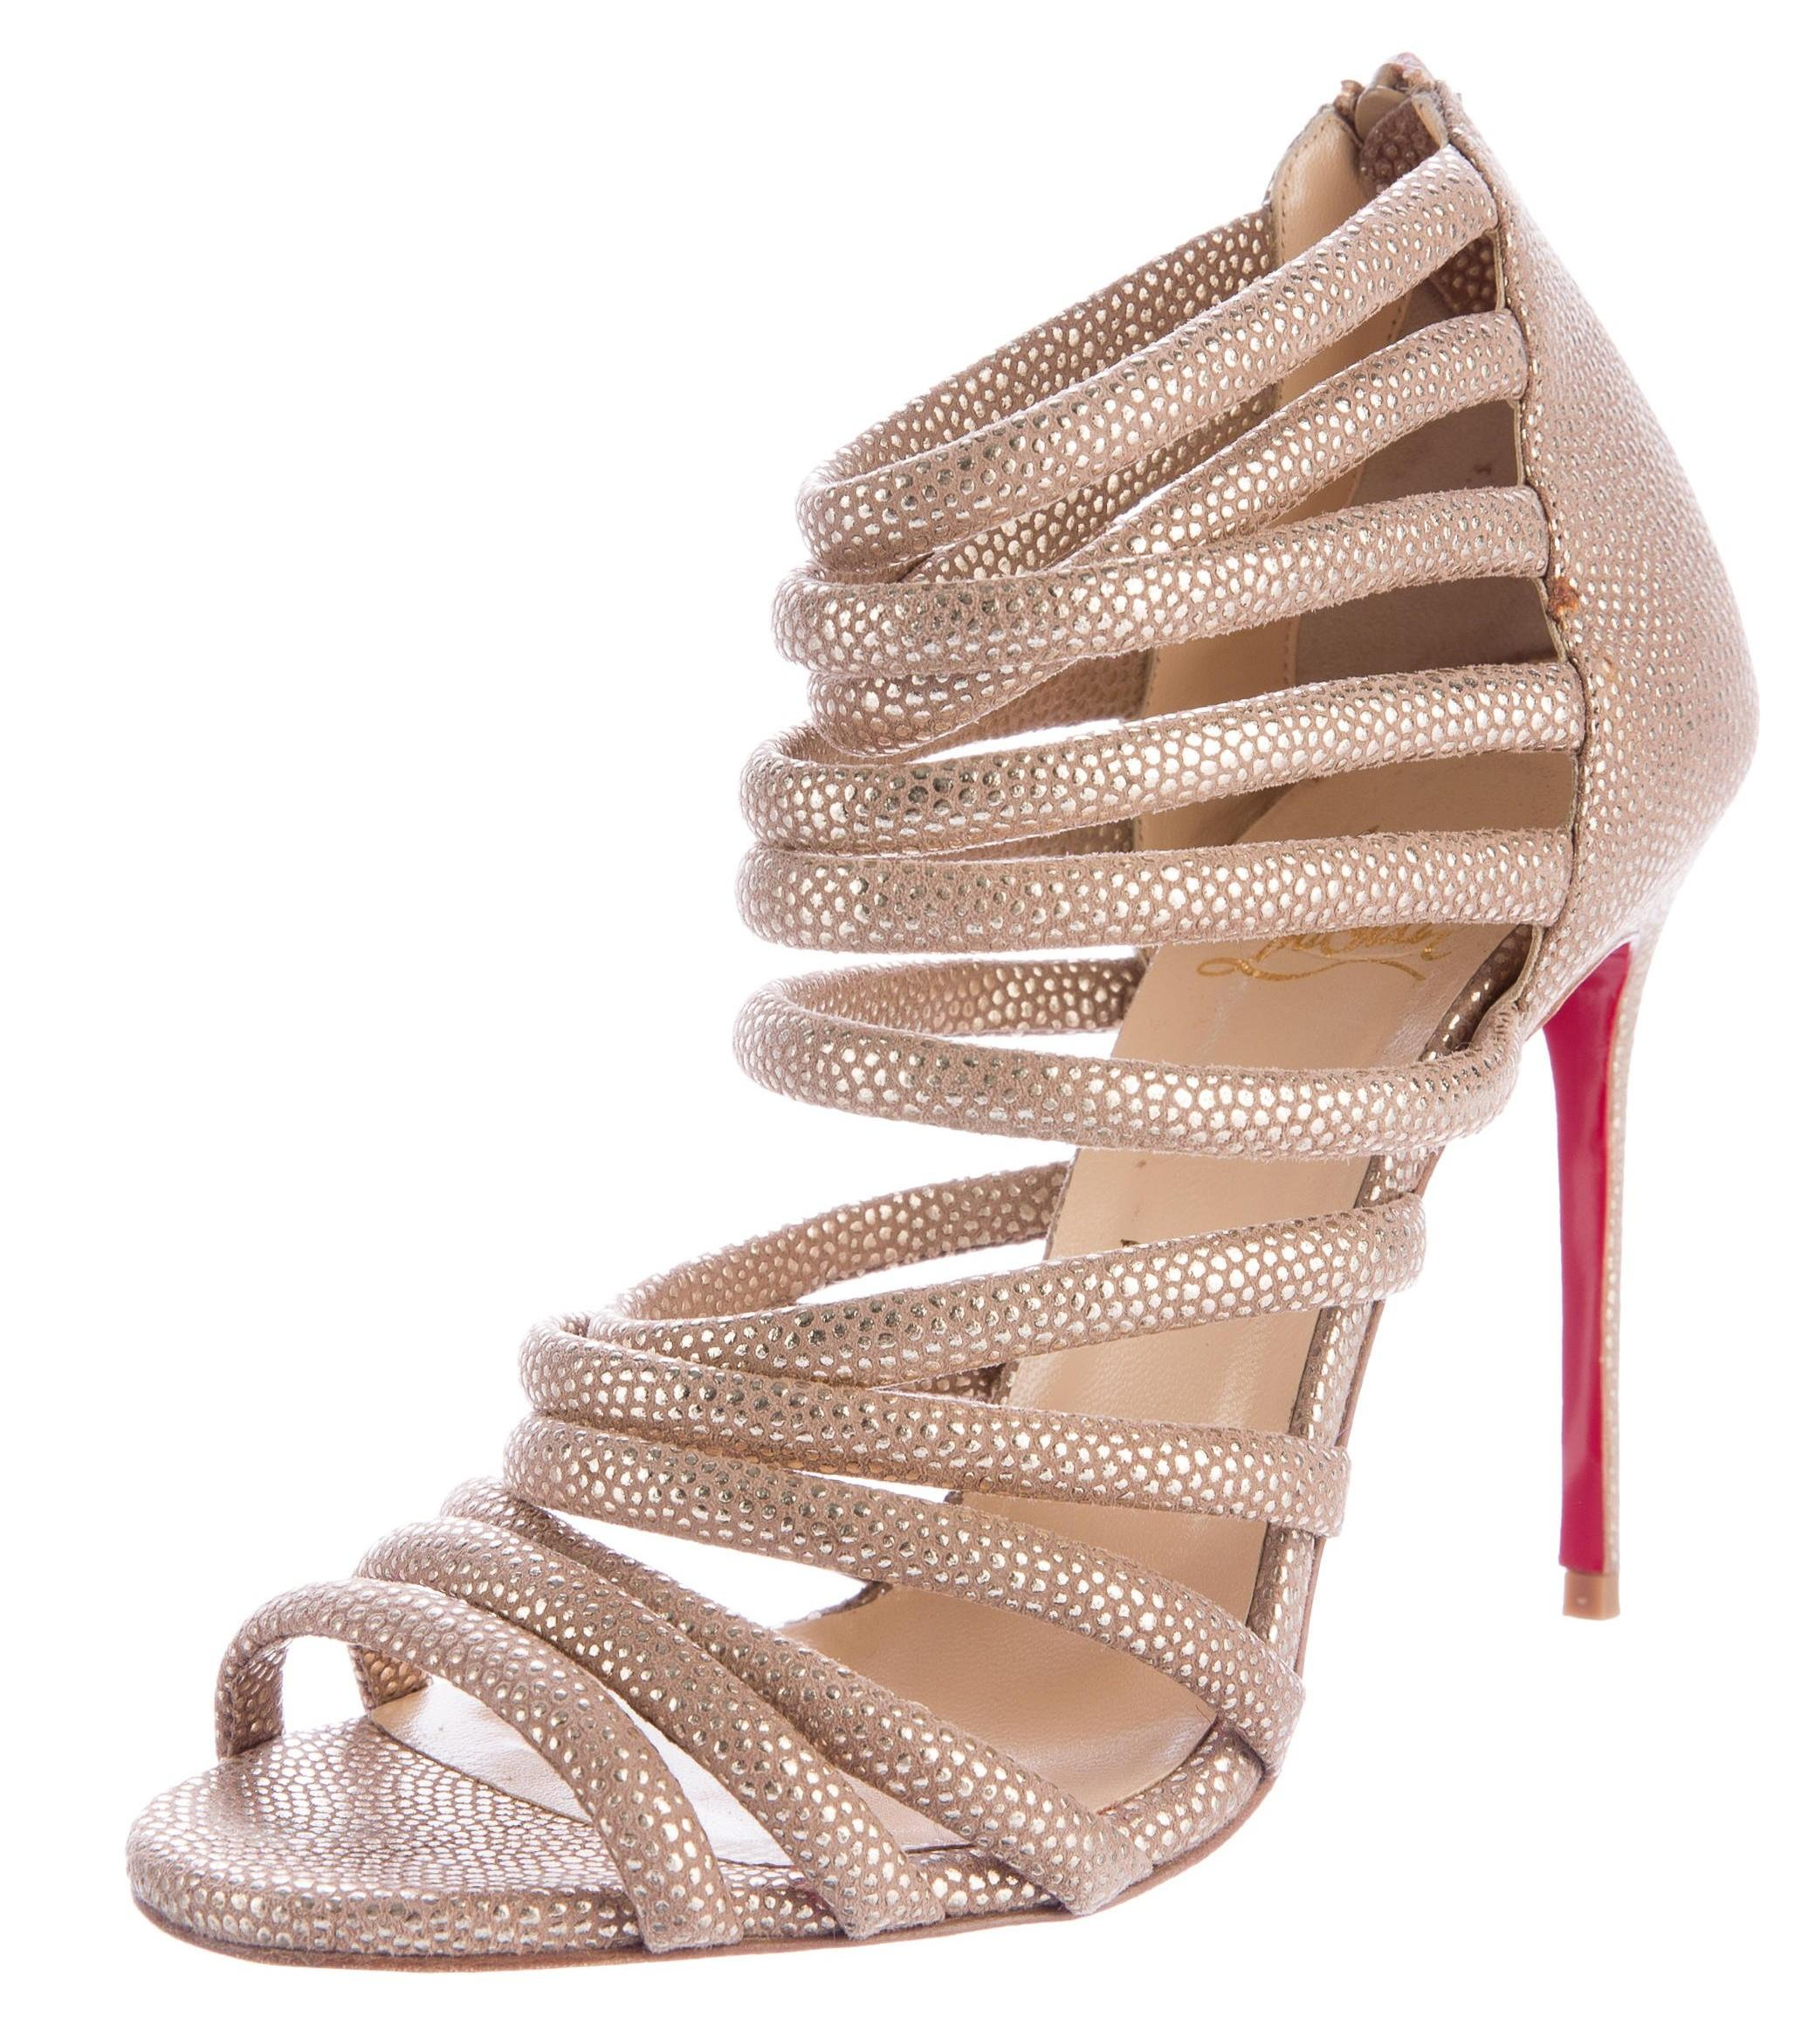 clearance cheap online sale get to buy Christian Louboutin Metallic Multistrap Sandals sale cheap shop offer cheap online cheap sale explore DkbCFB